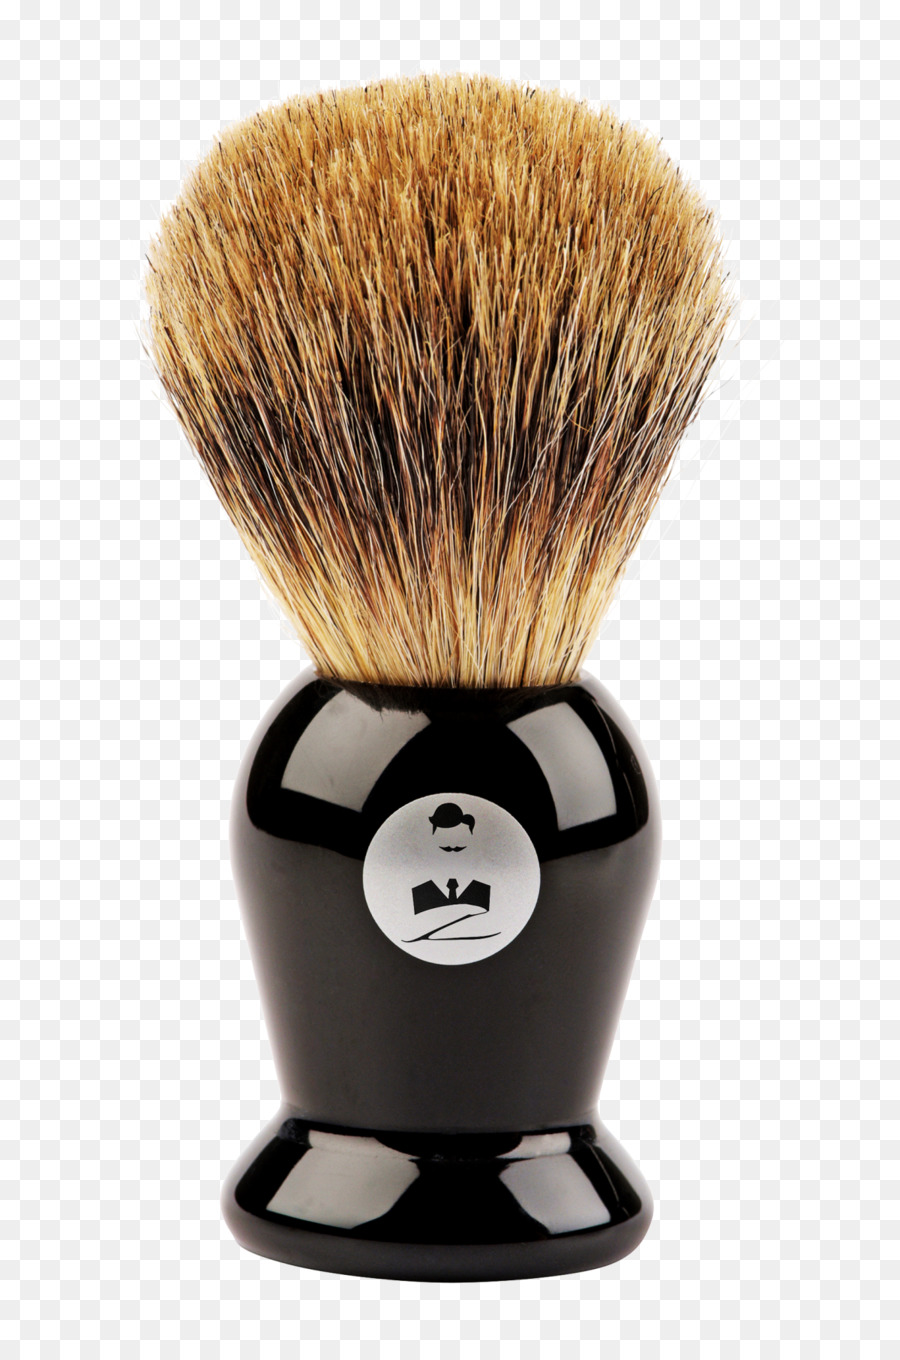 Old fashioned hair brush 35